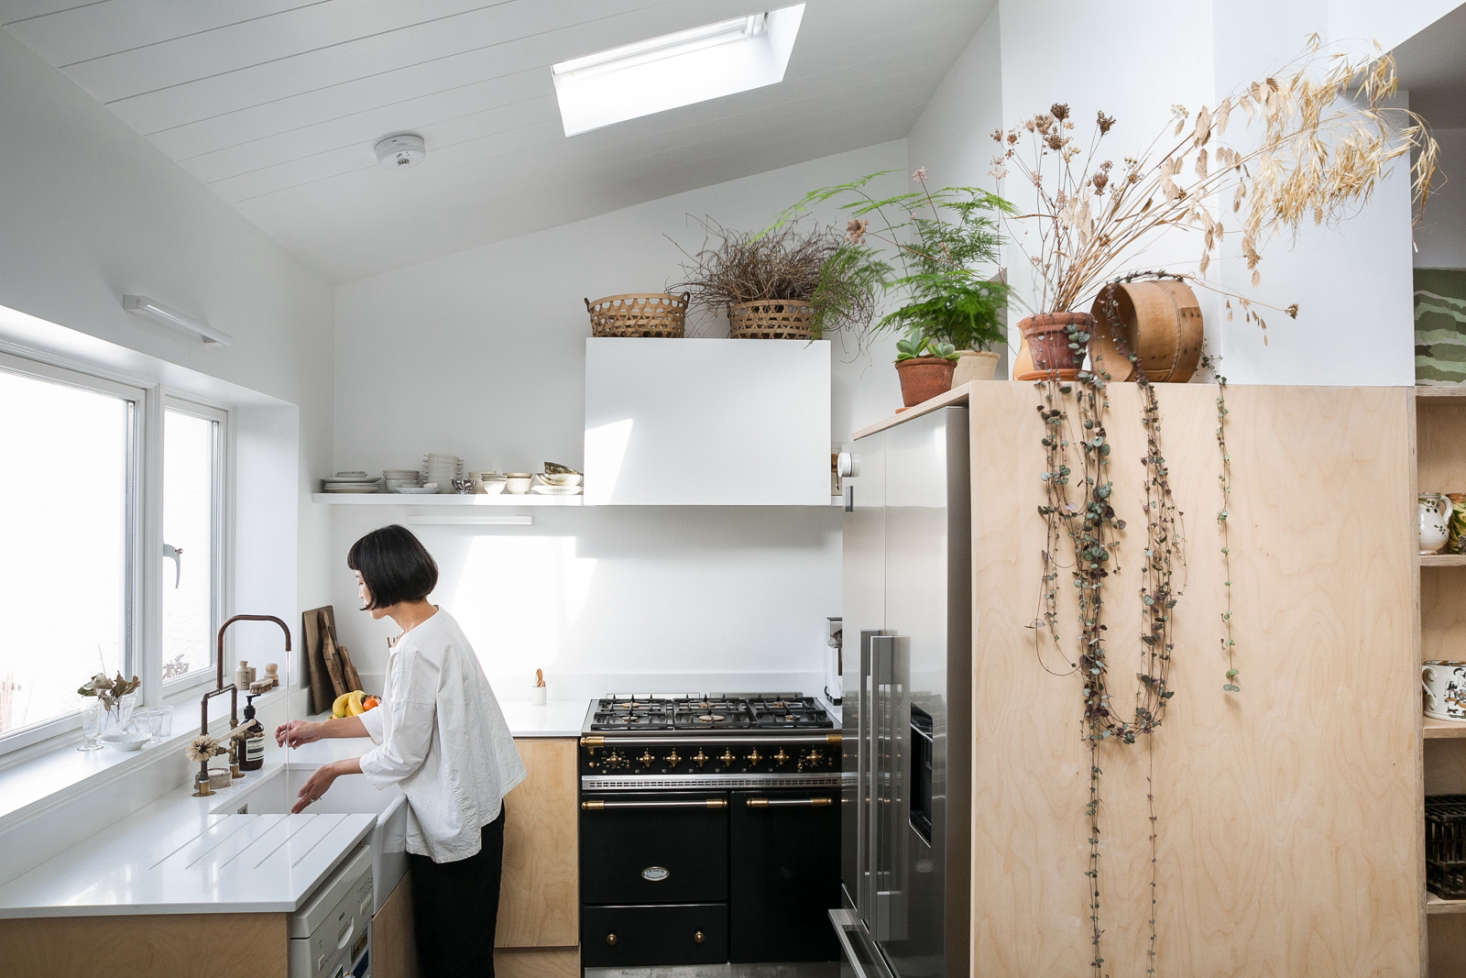 In Yasuyo's kitchen, golden grasses and dried flowers are elements in a botanical still life above the refrigerator.